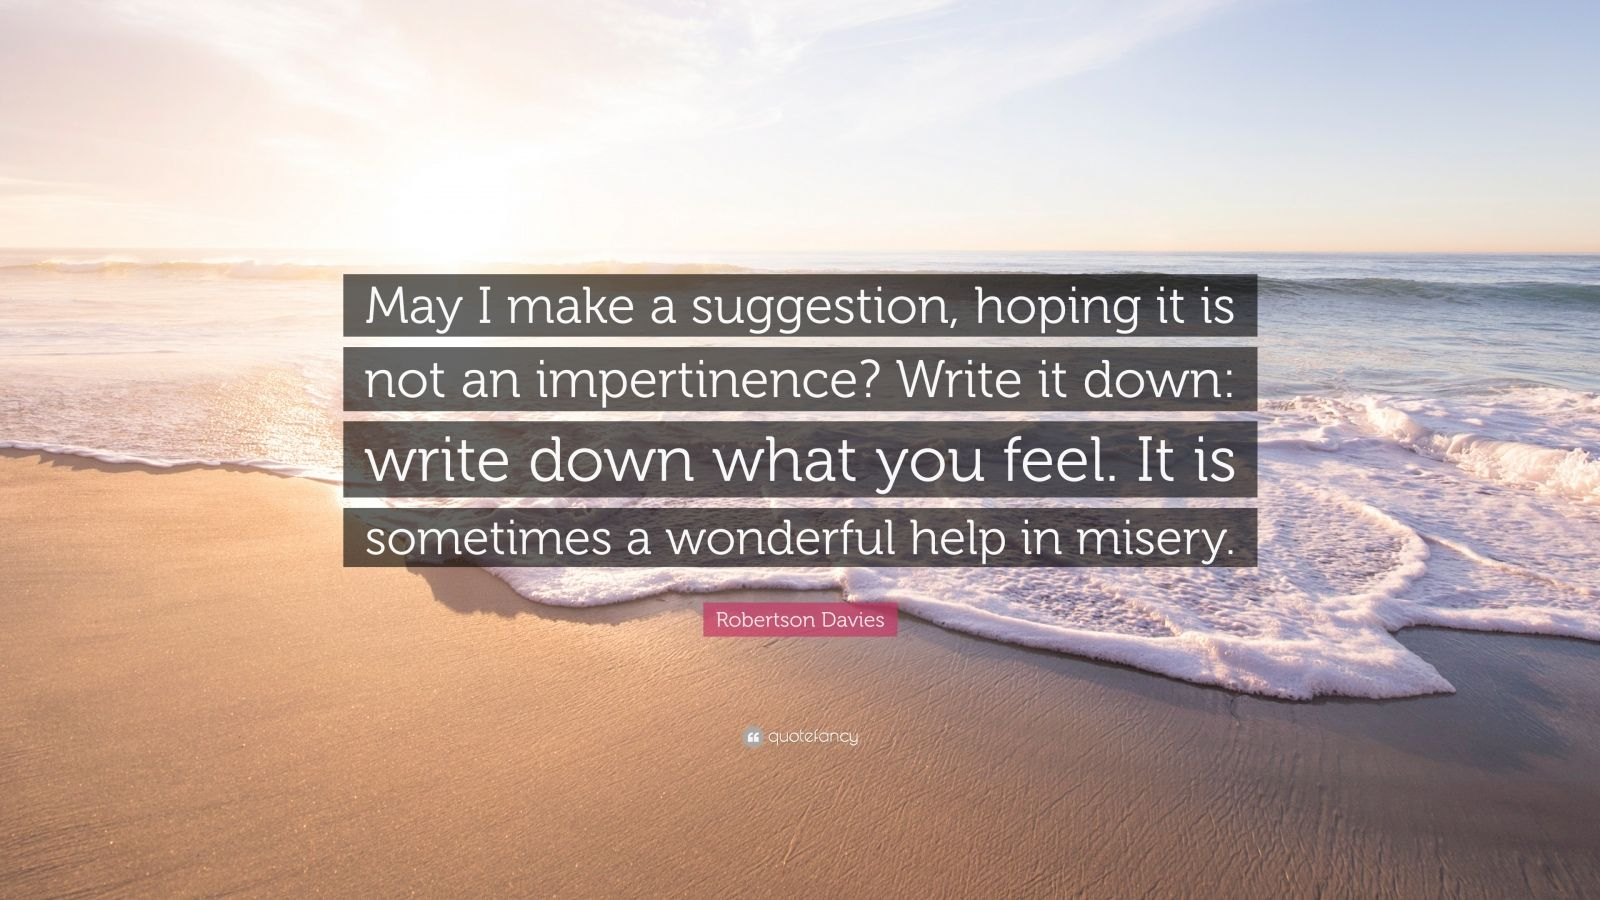 """Robertson Davies Quote: """"May I make a suggestion, hoping it is not an impertinence? Write it down: write down what you feel. It is sometimes a wonderful help in misery."""""""